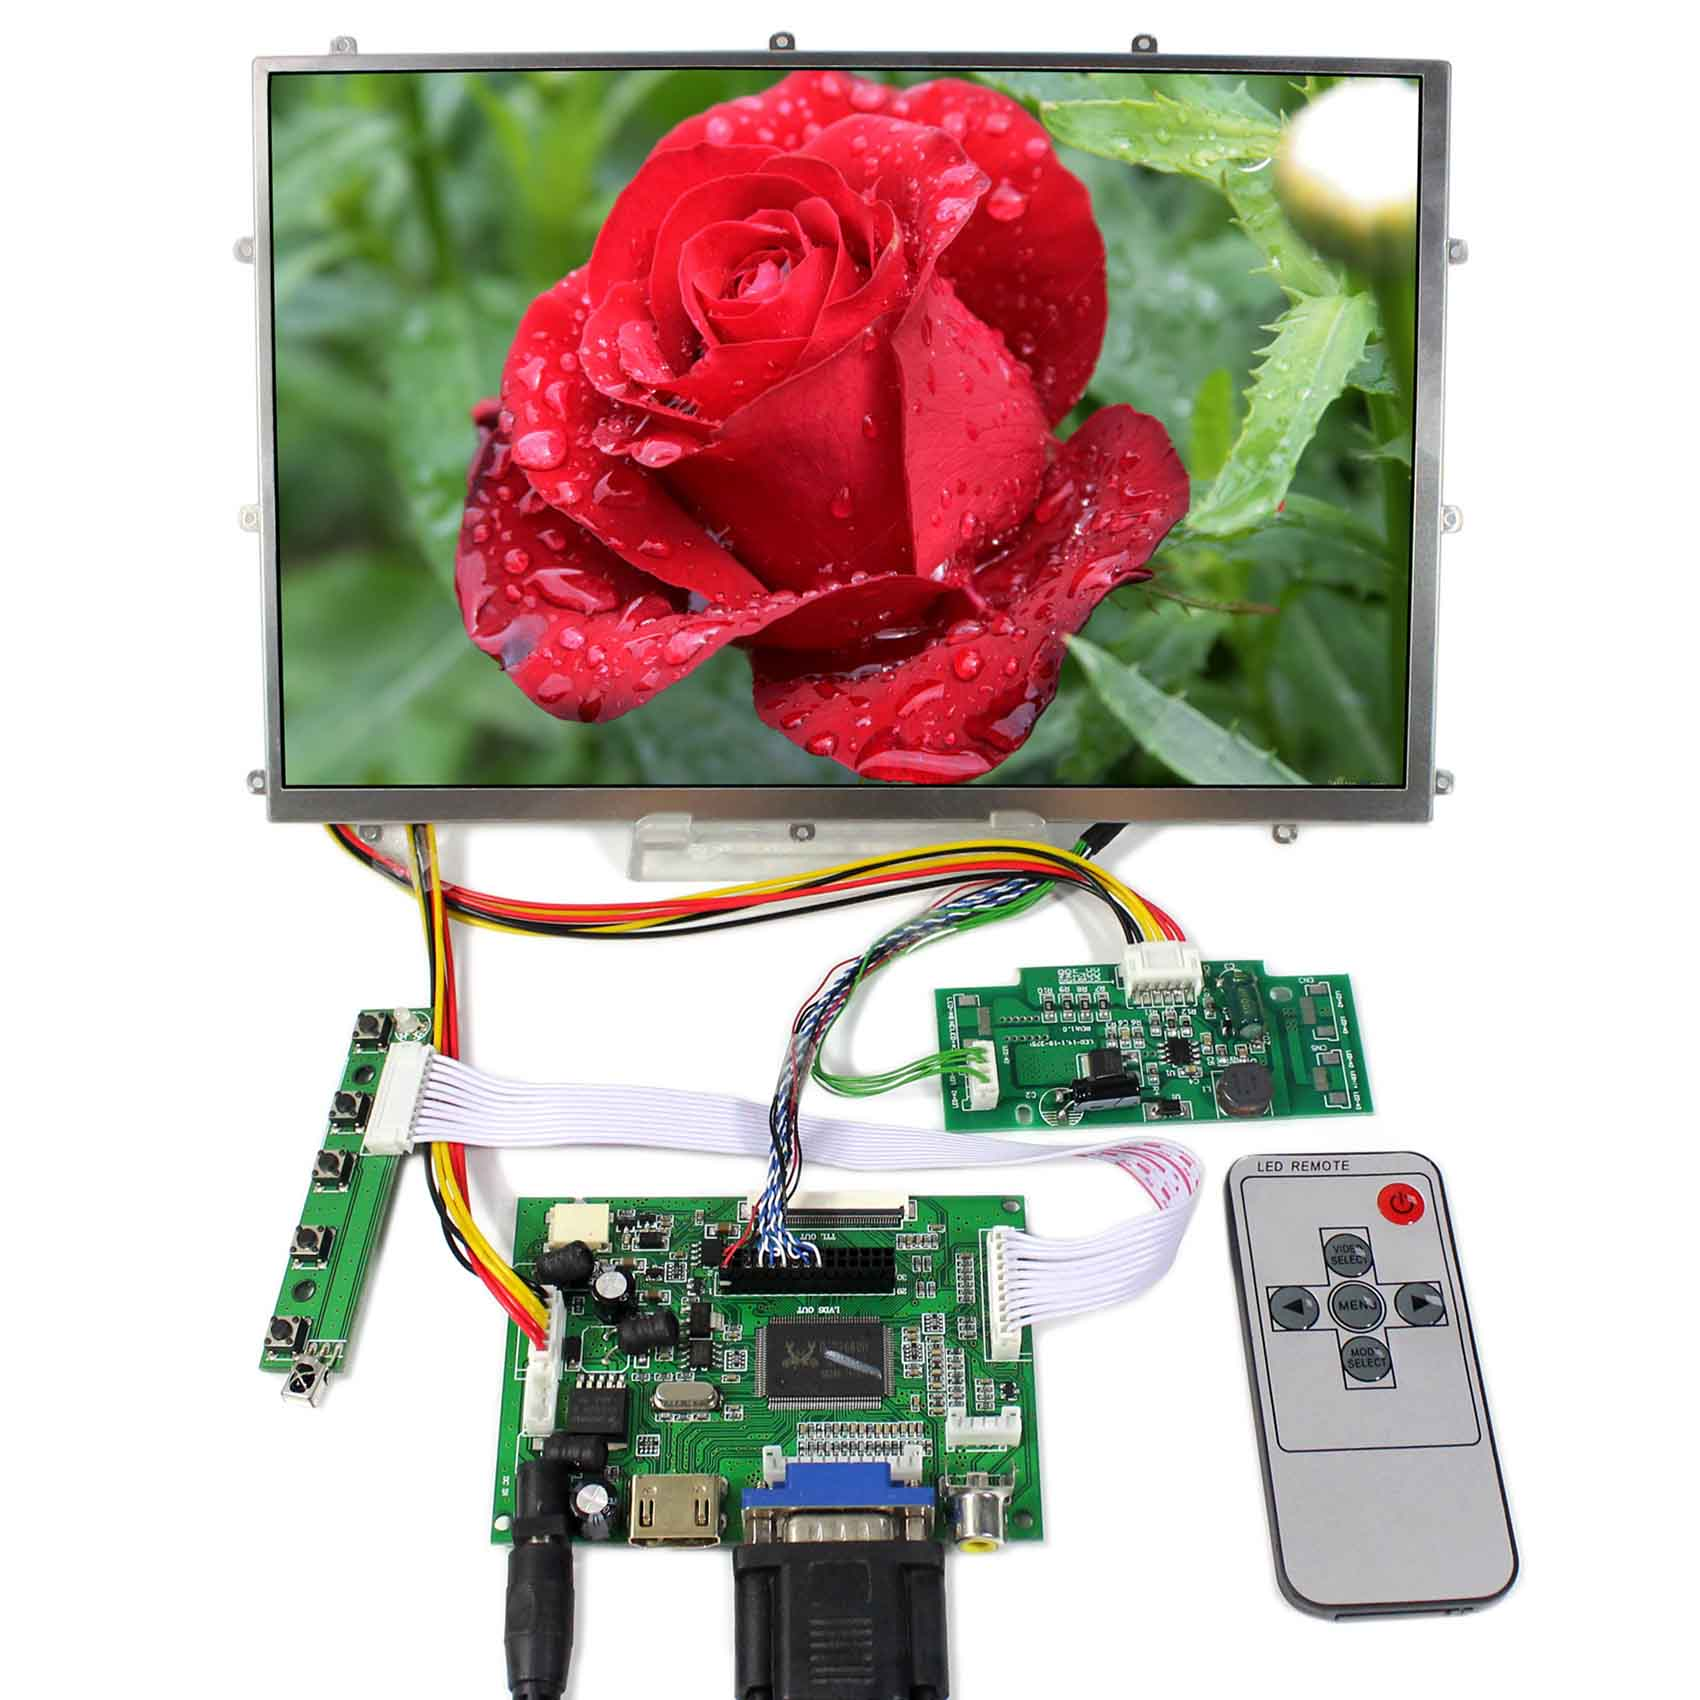 LCD Controller Board LCD Display 1280X800 B101EW04 10.1 Touch LCD Screen HDMI AV DVI ACC LCD Board LCD Controller Board LCD Display 1280X800 B101EW04 10.1 Touch LCD Screen HDMI AV DVI ACC LCD Board